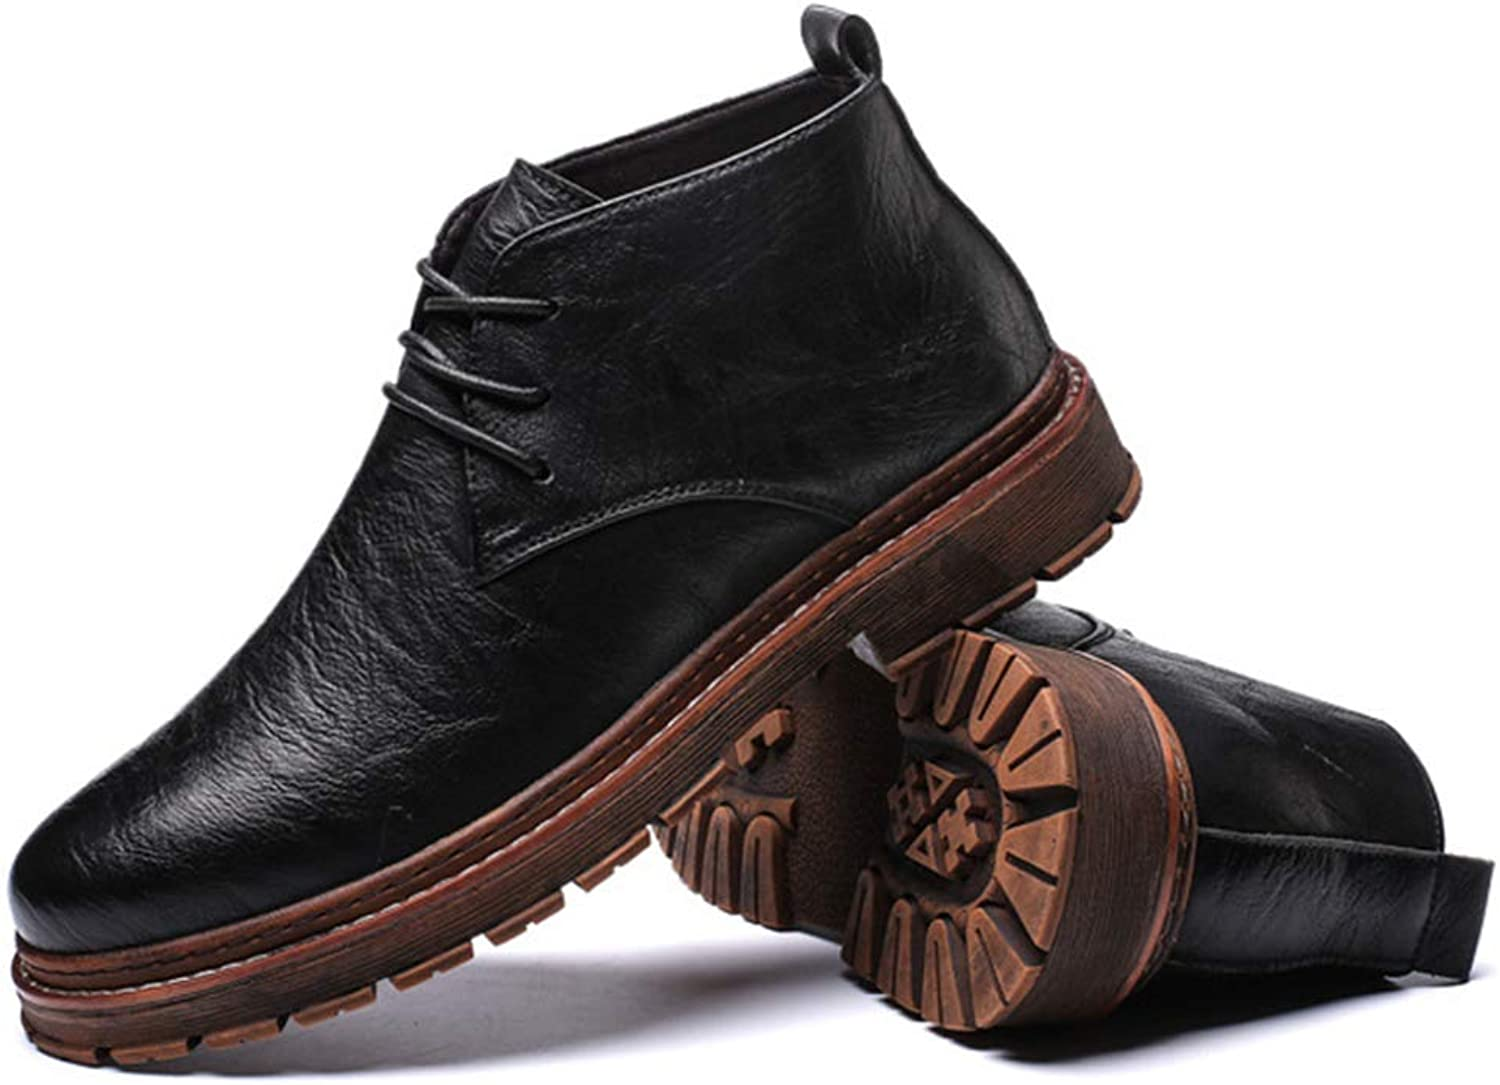 Men'S Martin Boots Leather Work Boots Large Size Casual shoes Ankle Boots Outdoor Hiking Boots Knight Boots Desert Boots